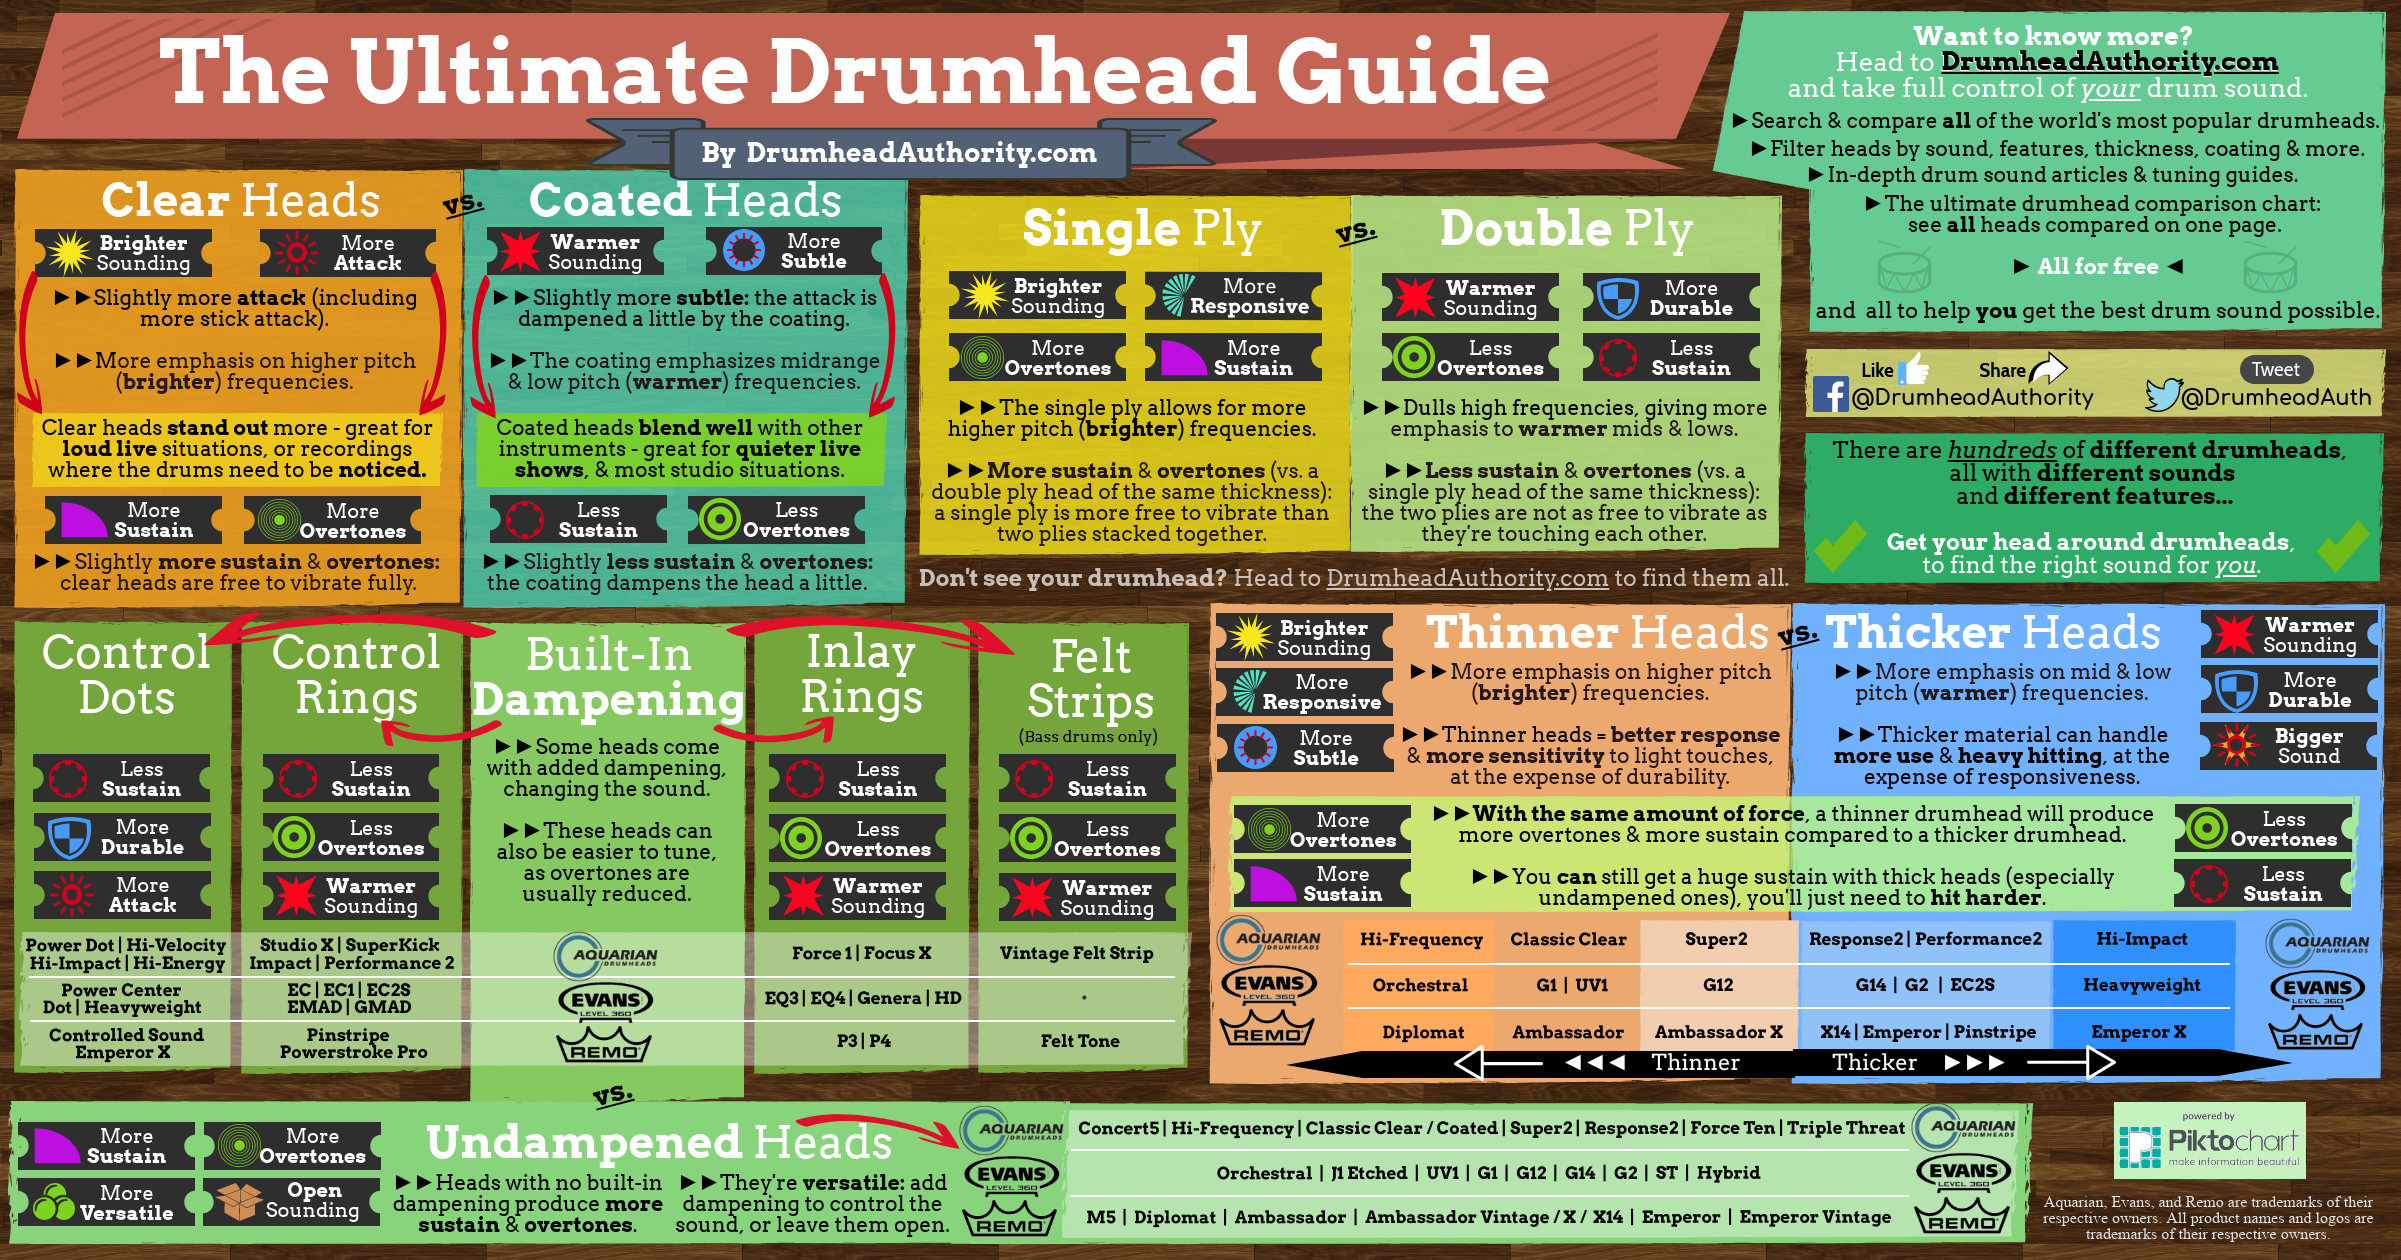 DrumheadAuthority.com - The Ultimate Drumhead Guide Infographic